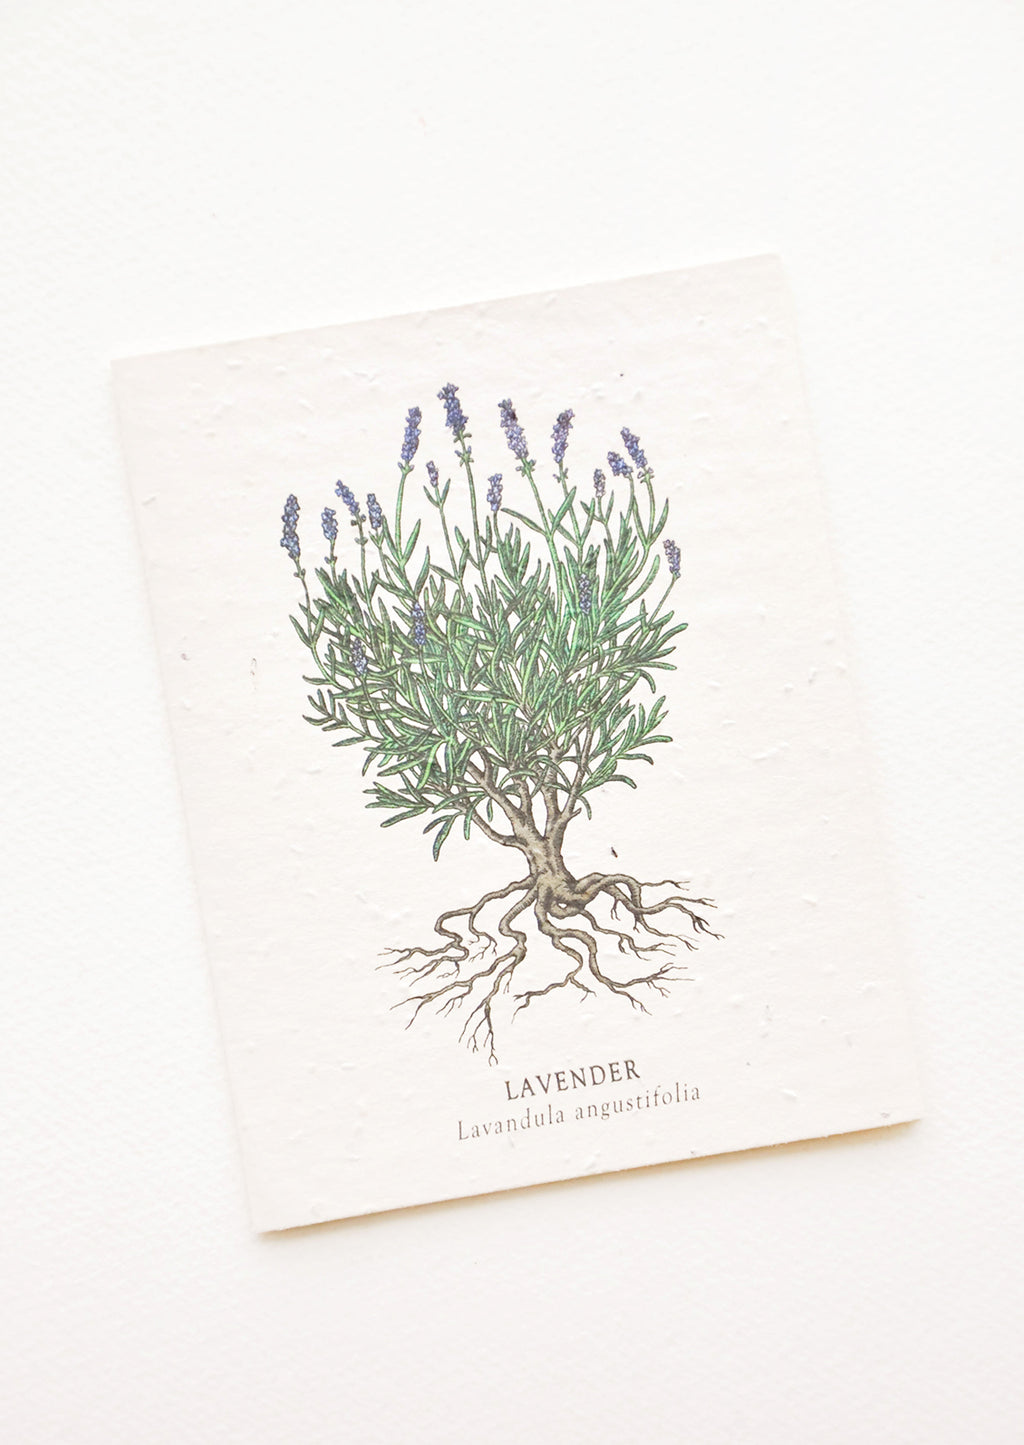 Lavender: Notecard with drawing of a lavender plant.